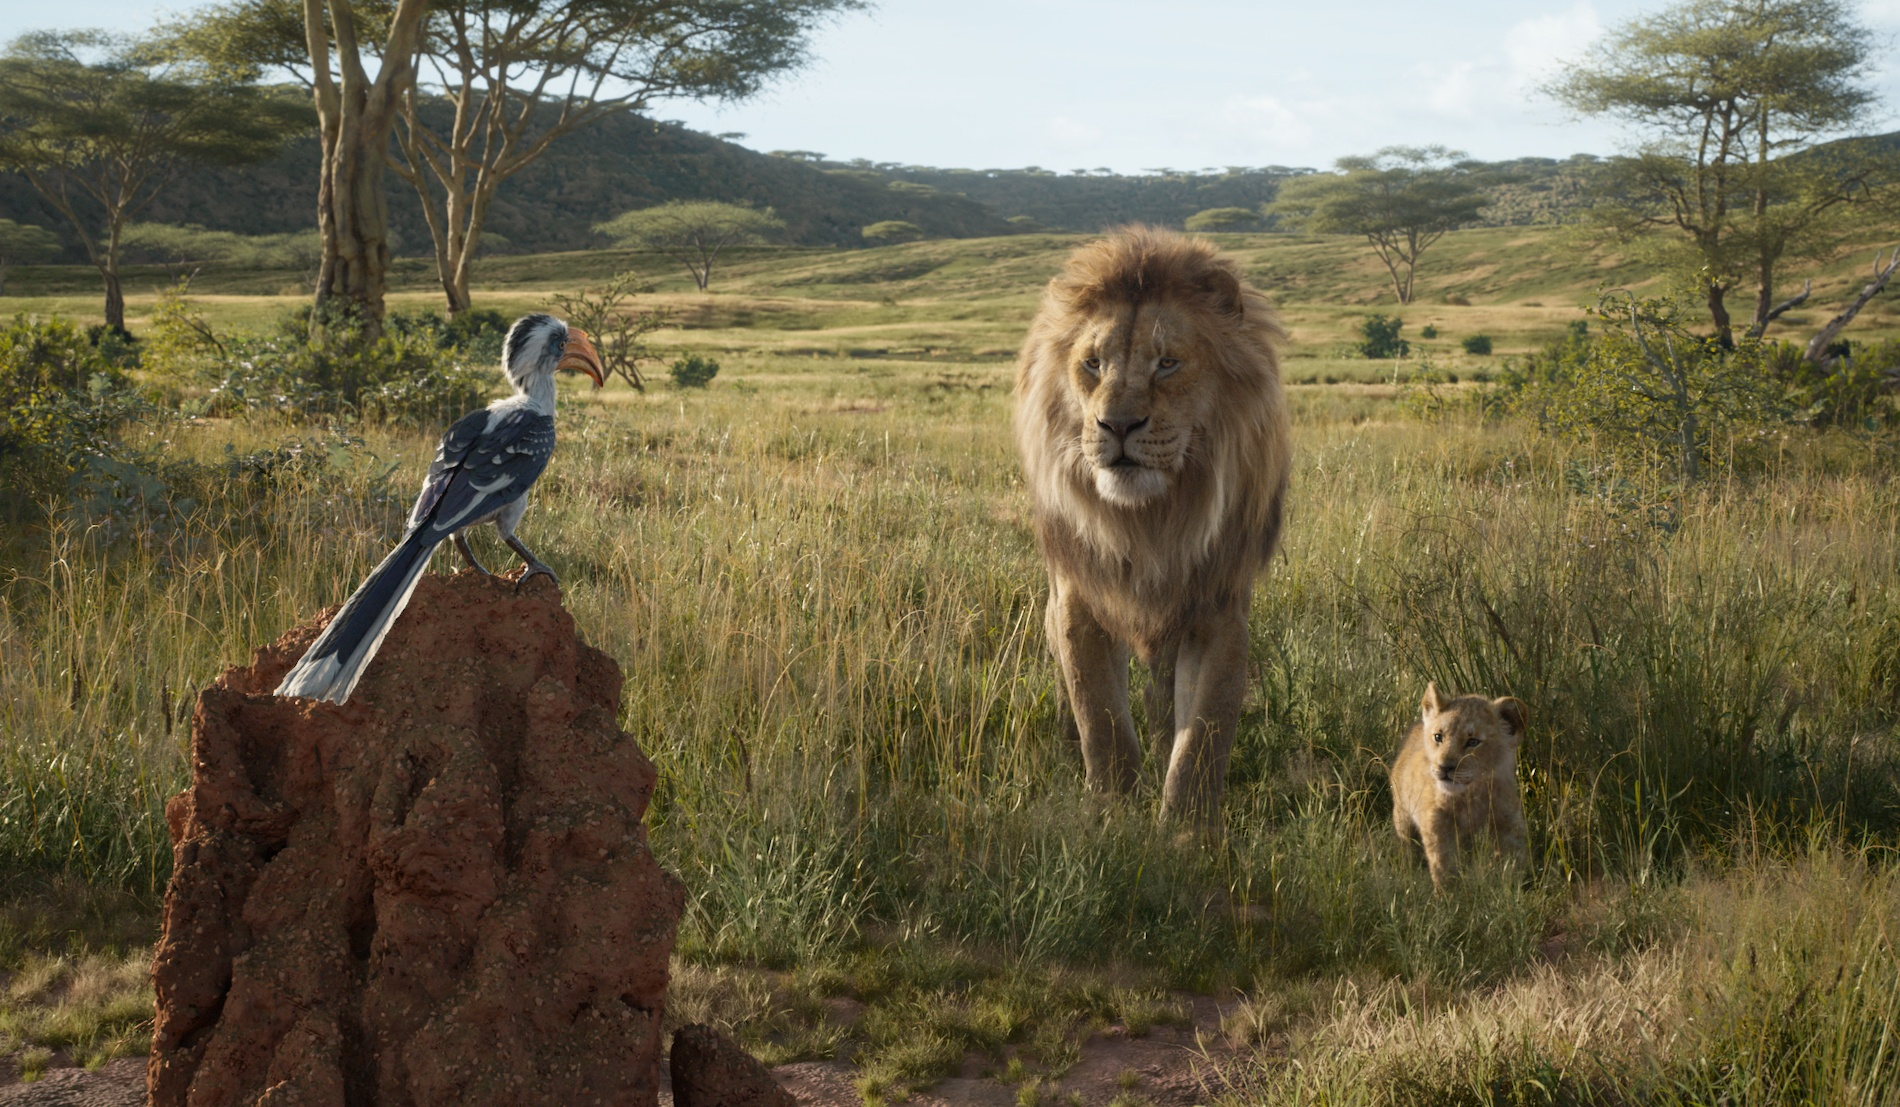 How Jon Favreau Updated 'The Lion King' for a New Generation